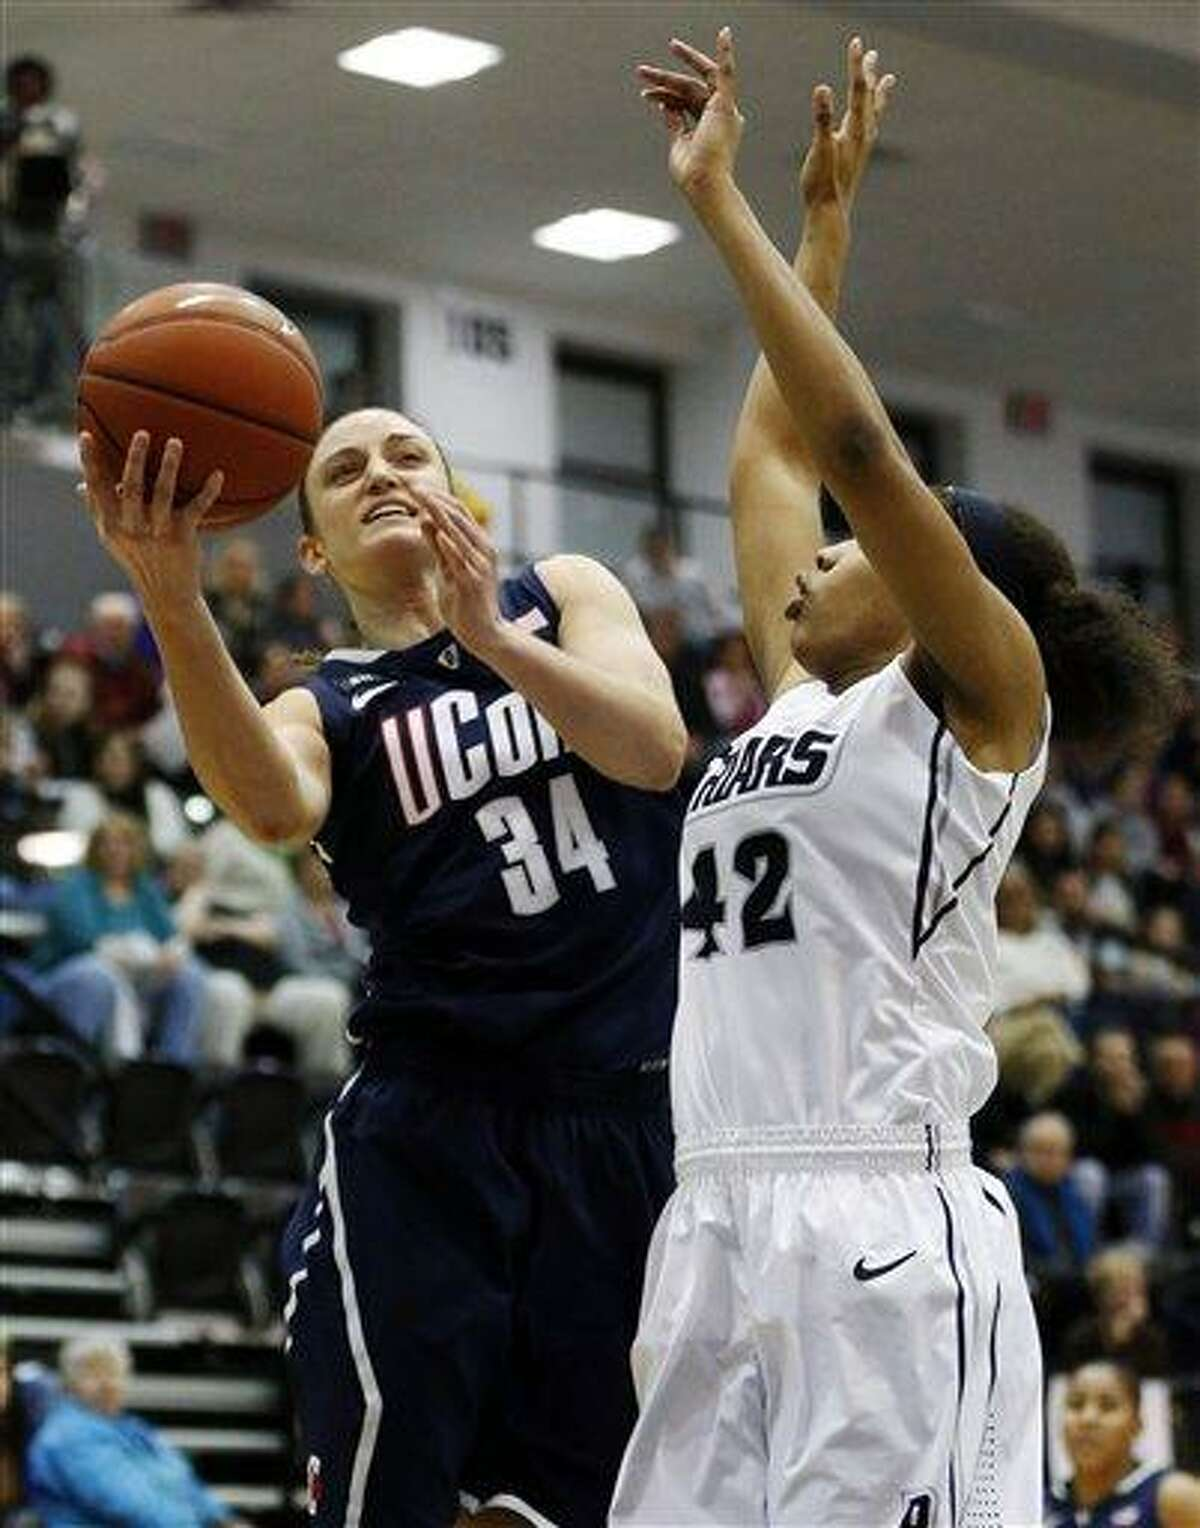 Connecticut's Kelly Faris (34) shoots past Providence's Alexis Harris (42) in the first half of an NCAA college basketball game in Providence, R.I., Tuesday, Feb. 12, 2013. (AP Photo/Michael Dwyer)